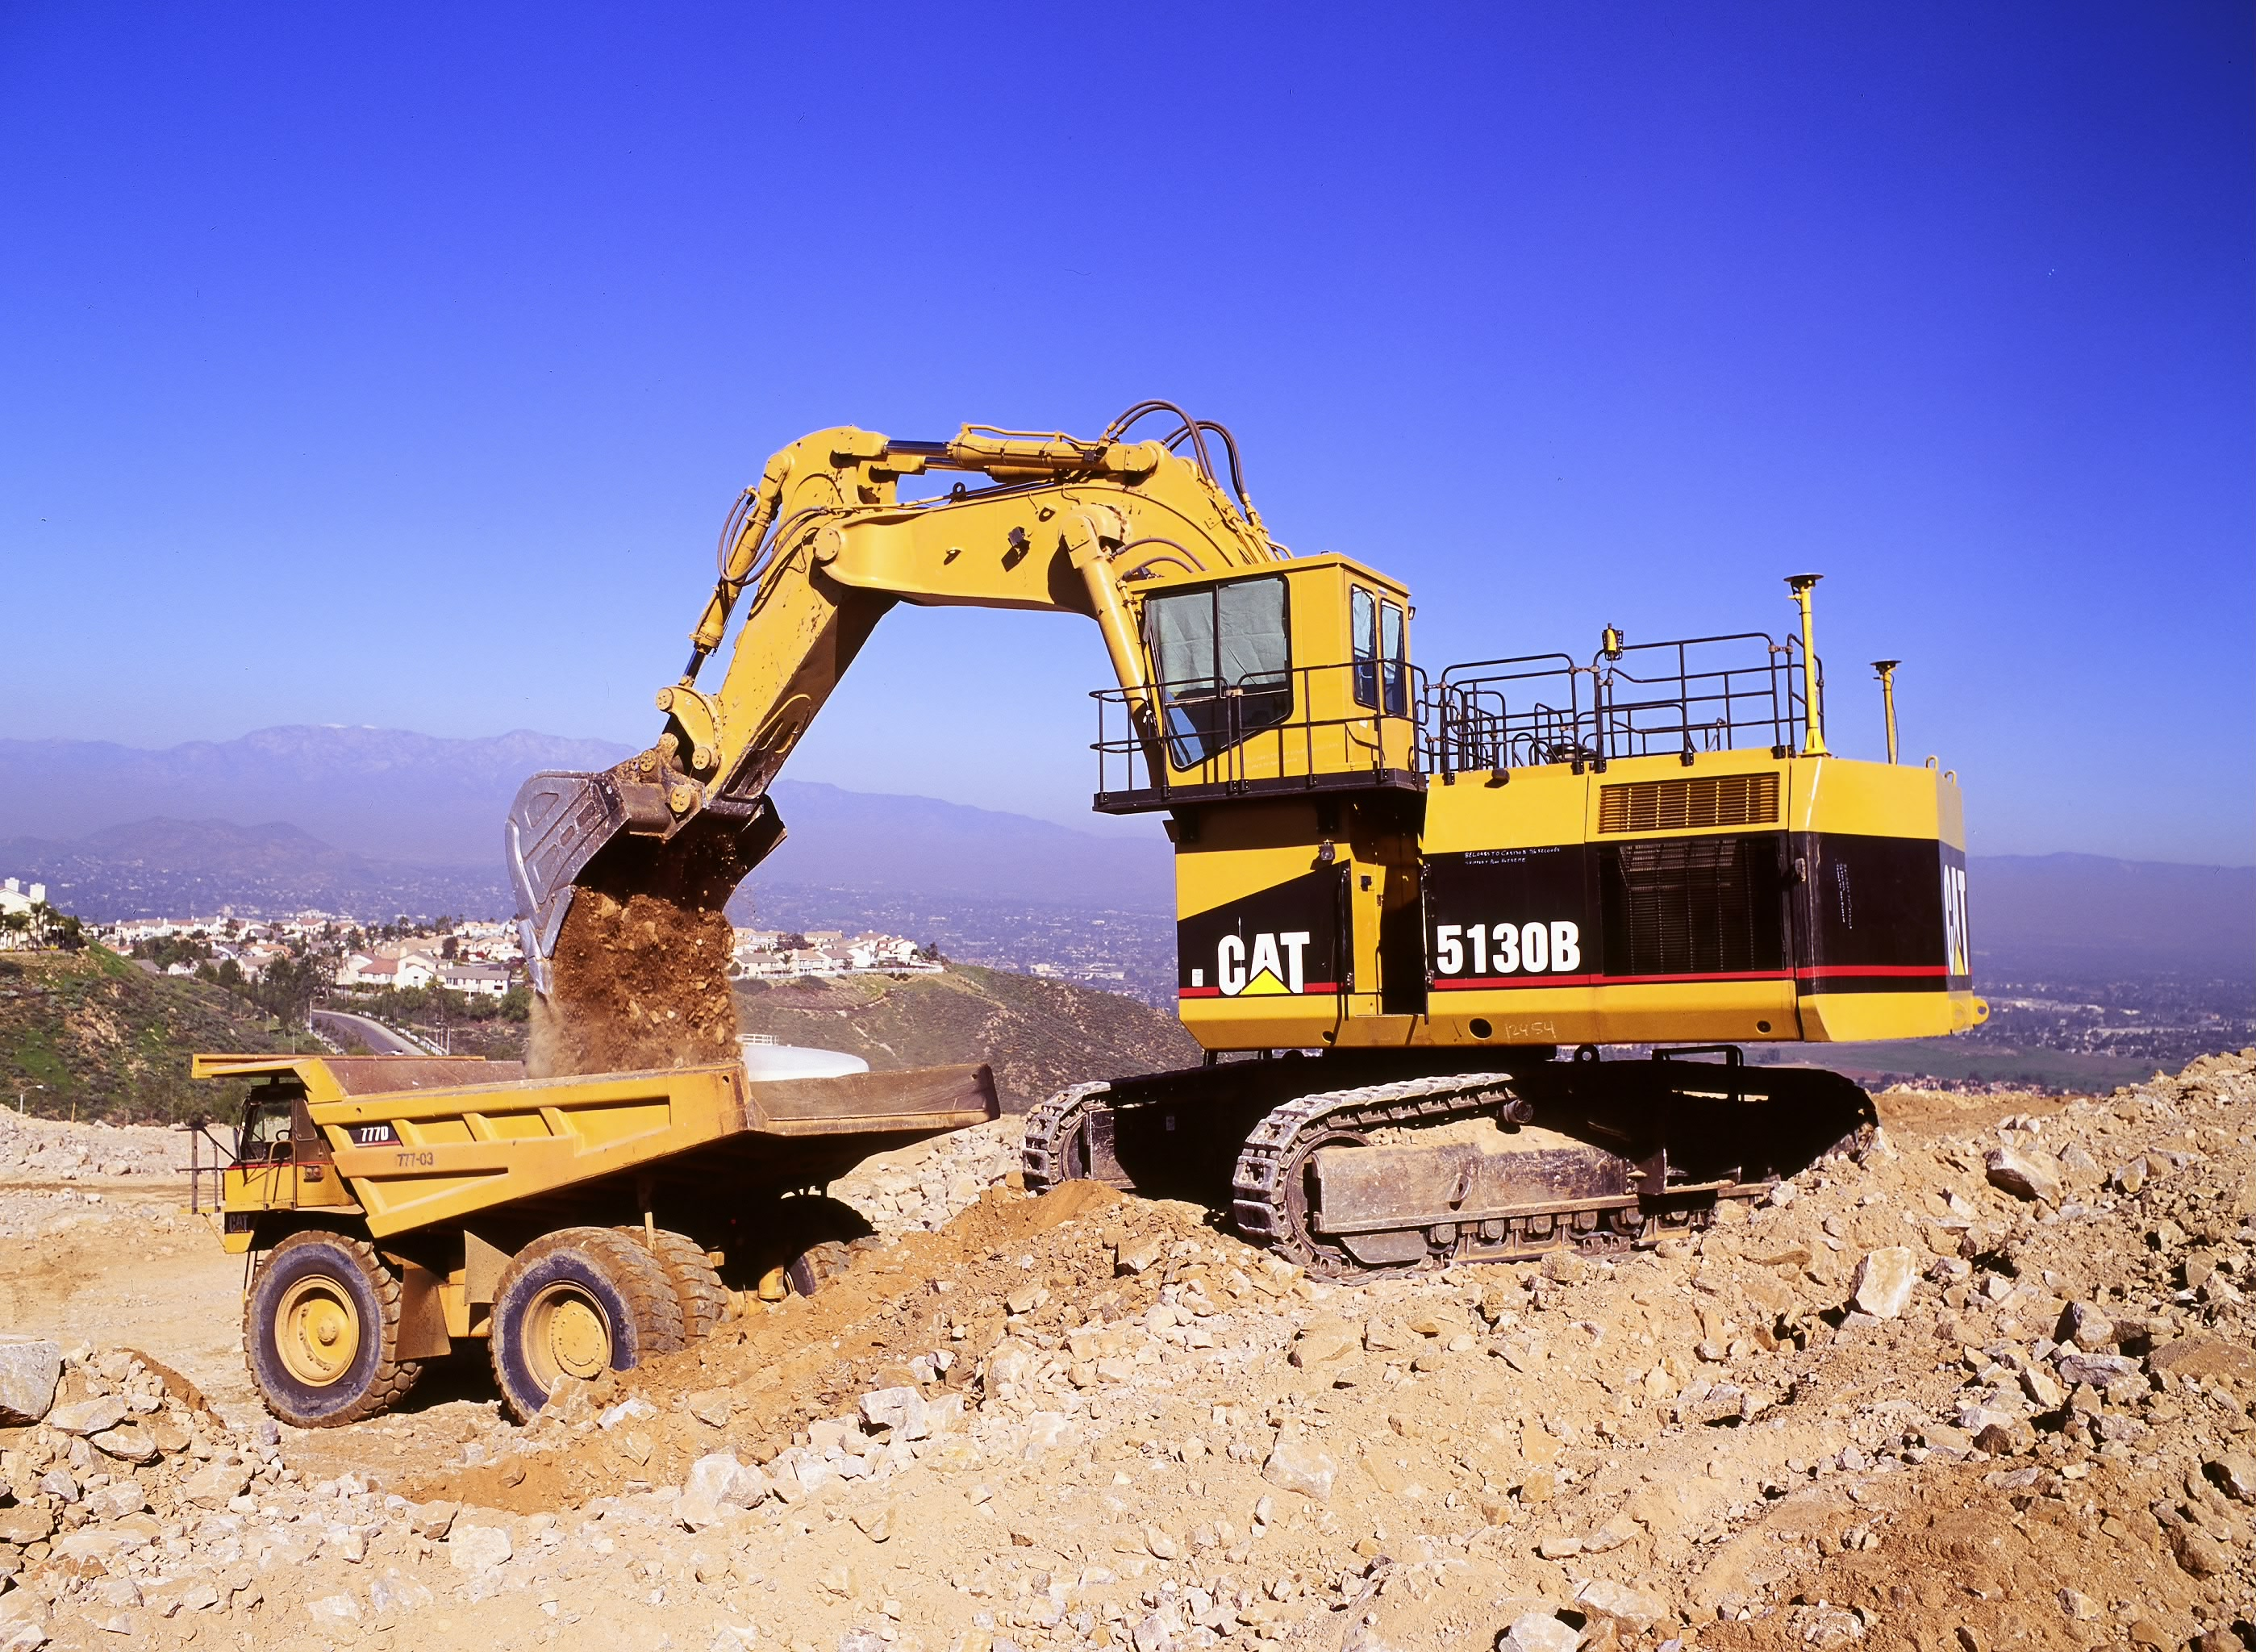 Sukut Equipment, Inc. to Lease Mass Excavation and Grading Equipment to Global Marketplace